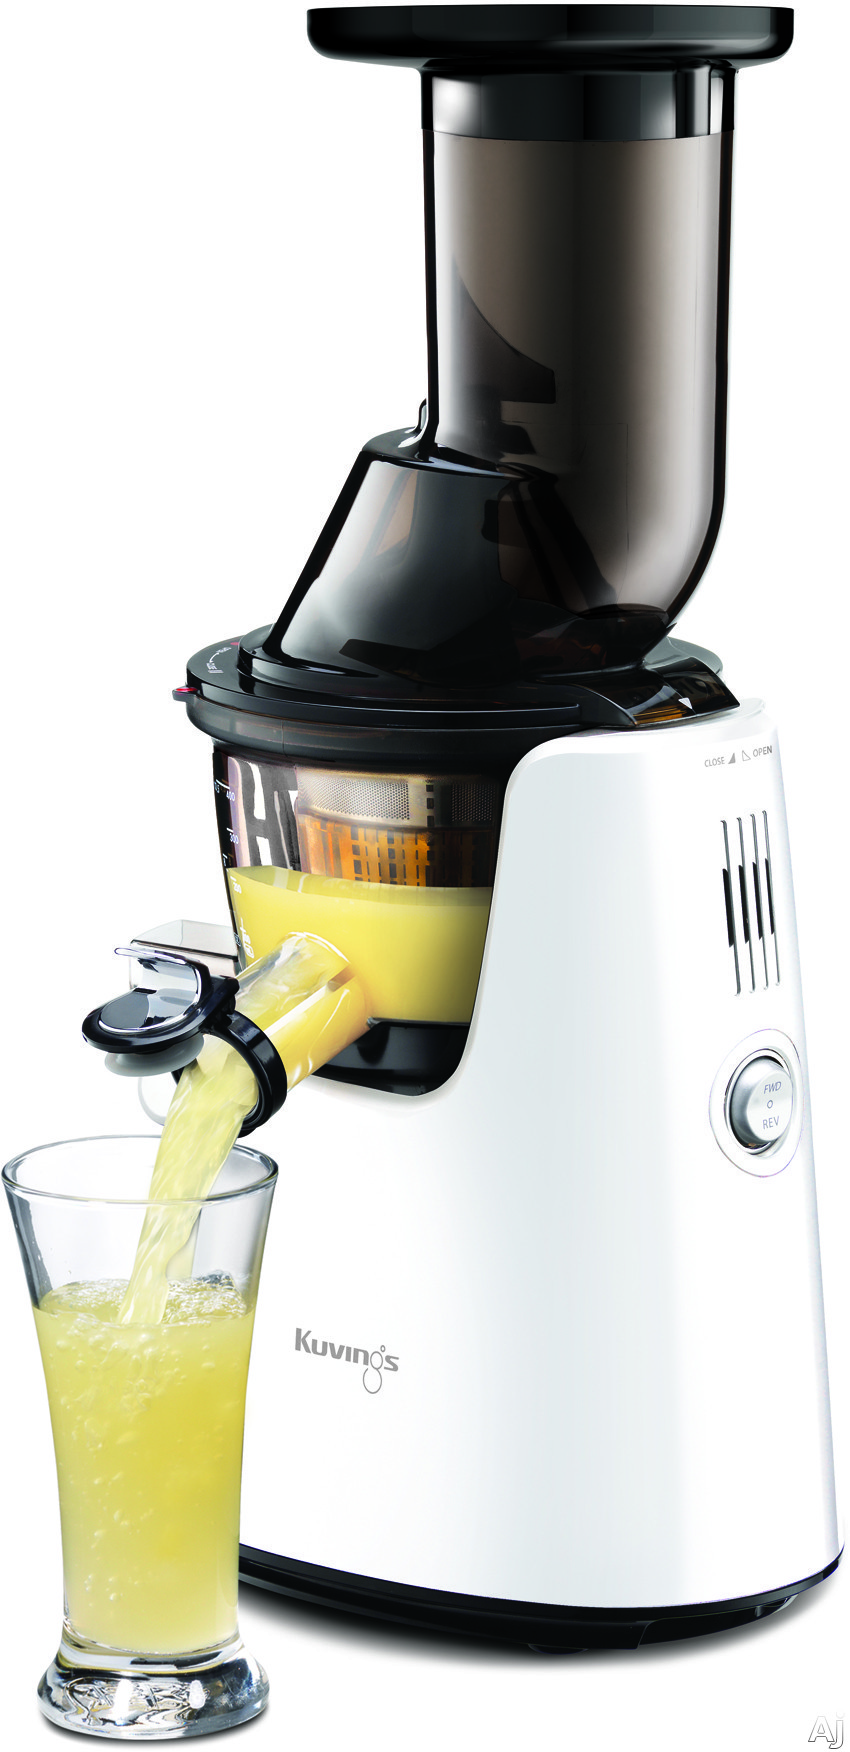 Kuvings Whole Slow Juicer B6000sr : Juicer Strainer - USA